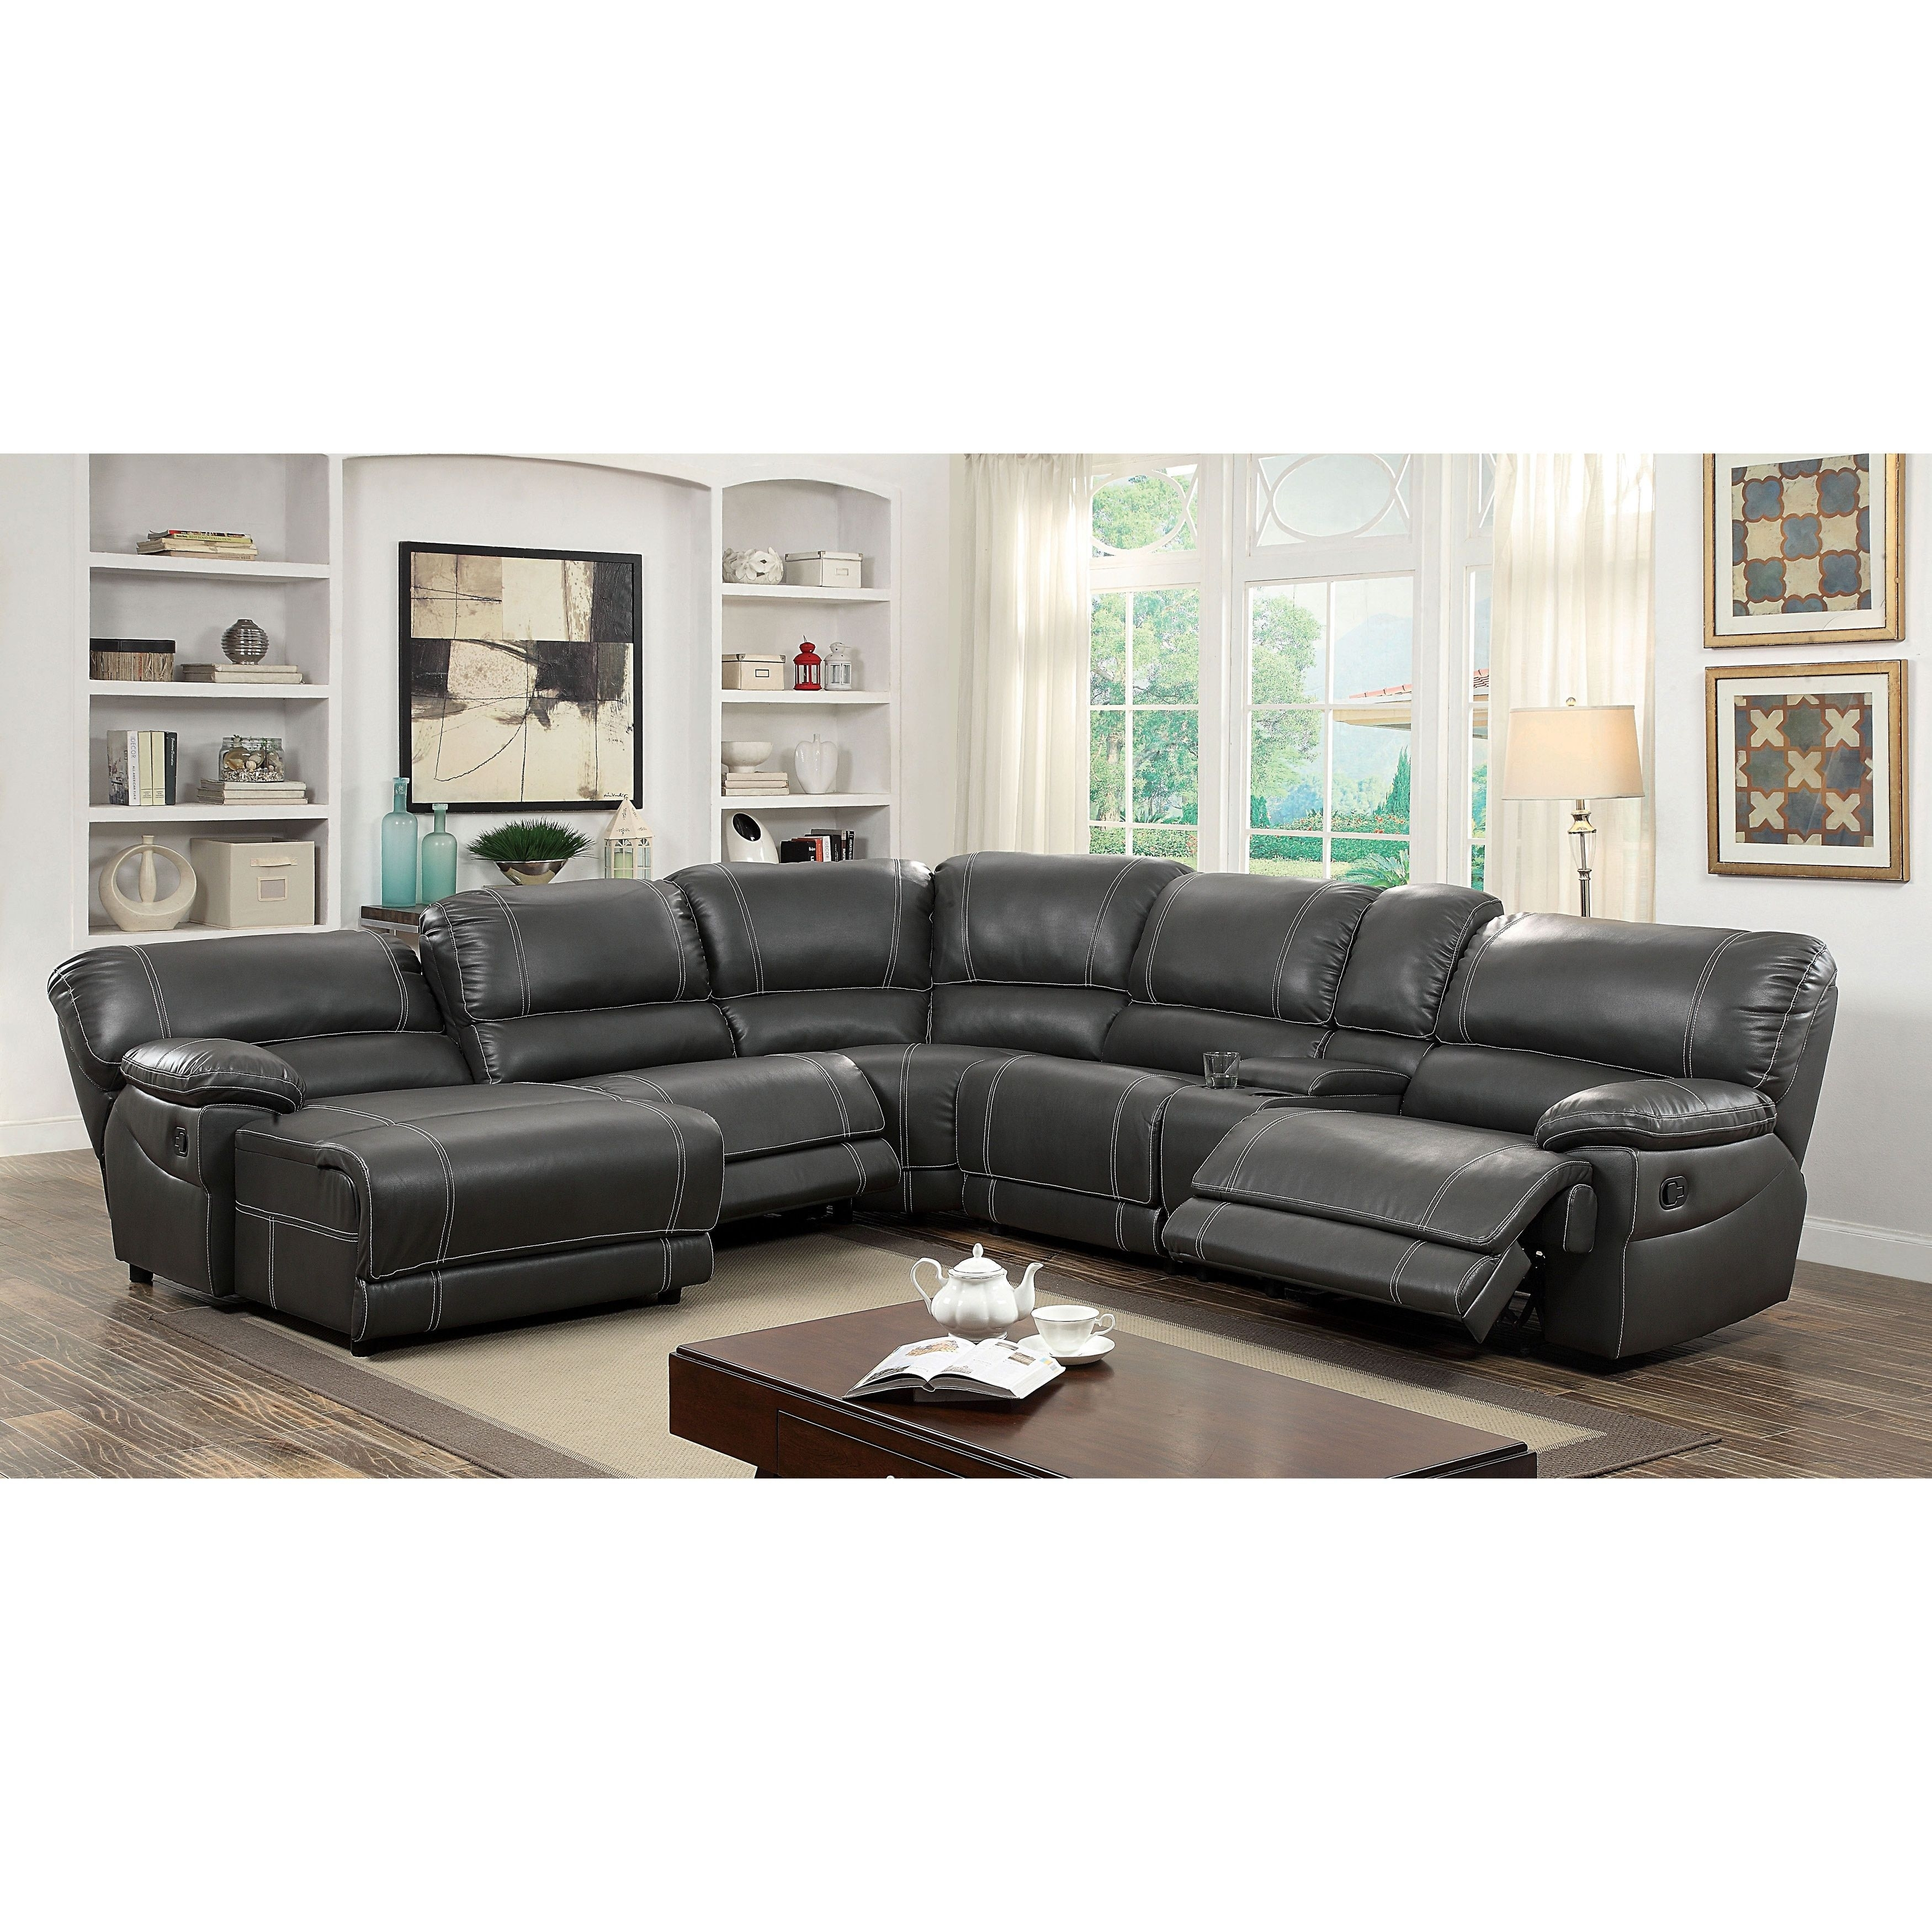 Christopher Reclining Sectional Collection With Denali Charcoal Grey 6 Piece Reclining Sectionals With 2 Power Headrests (Image 11 of 25)